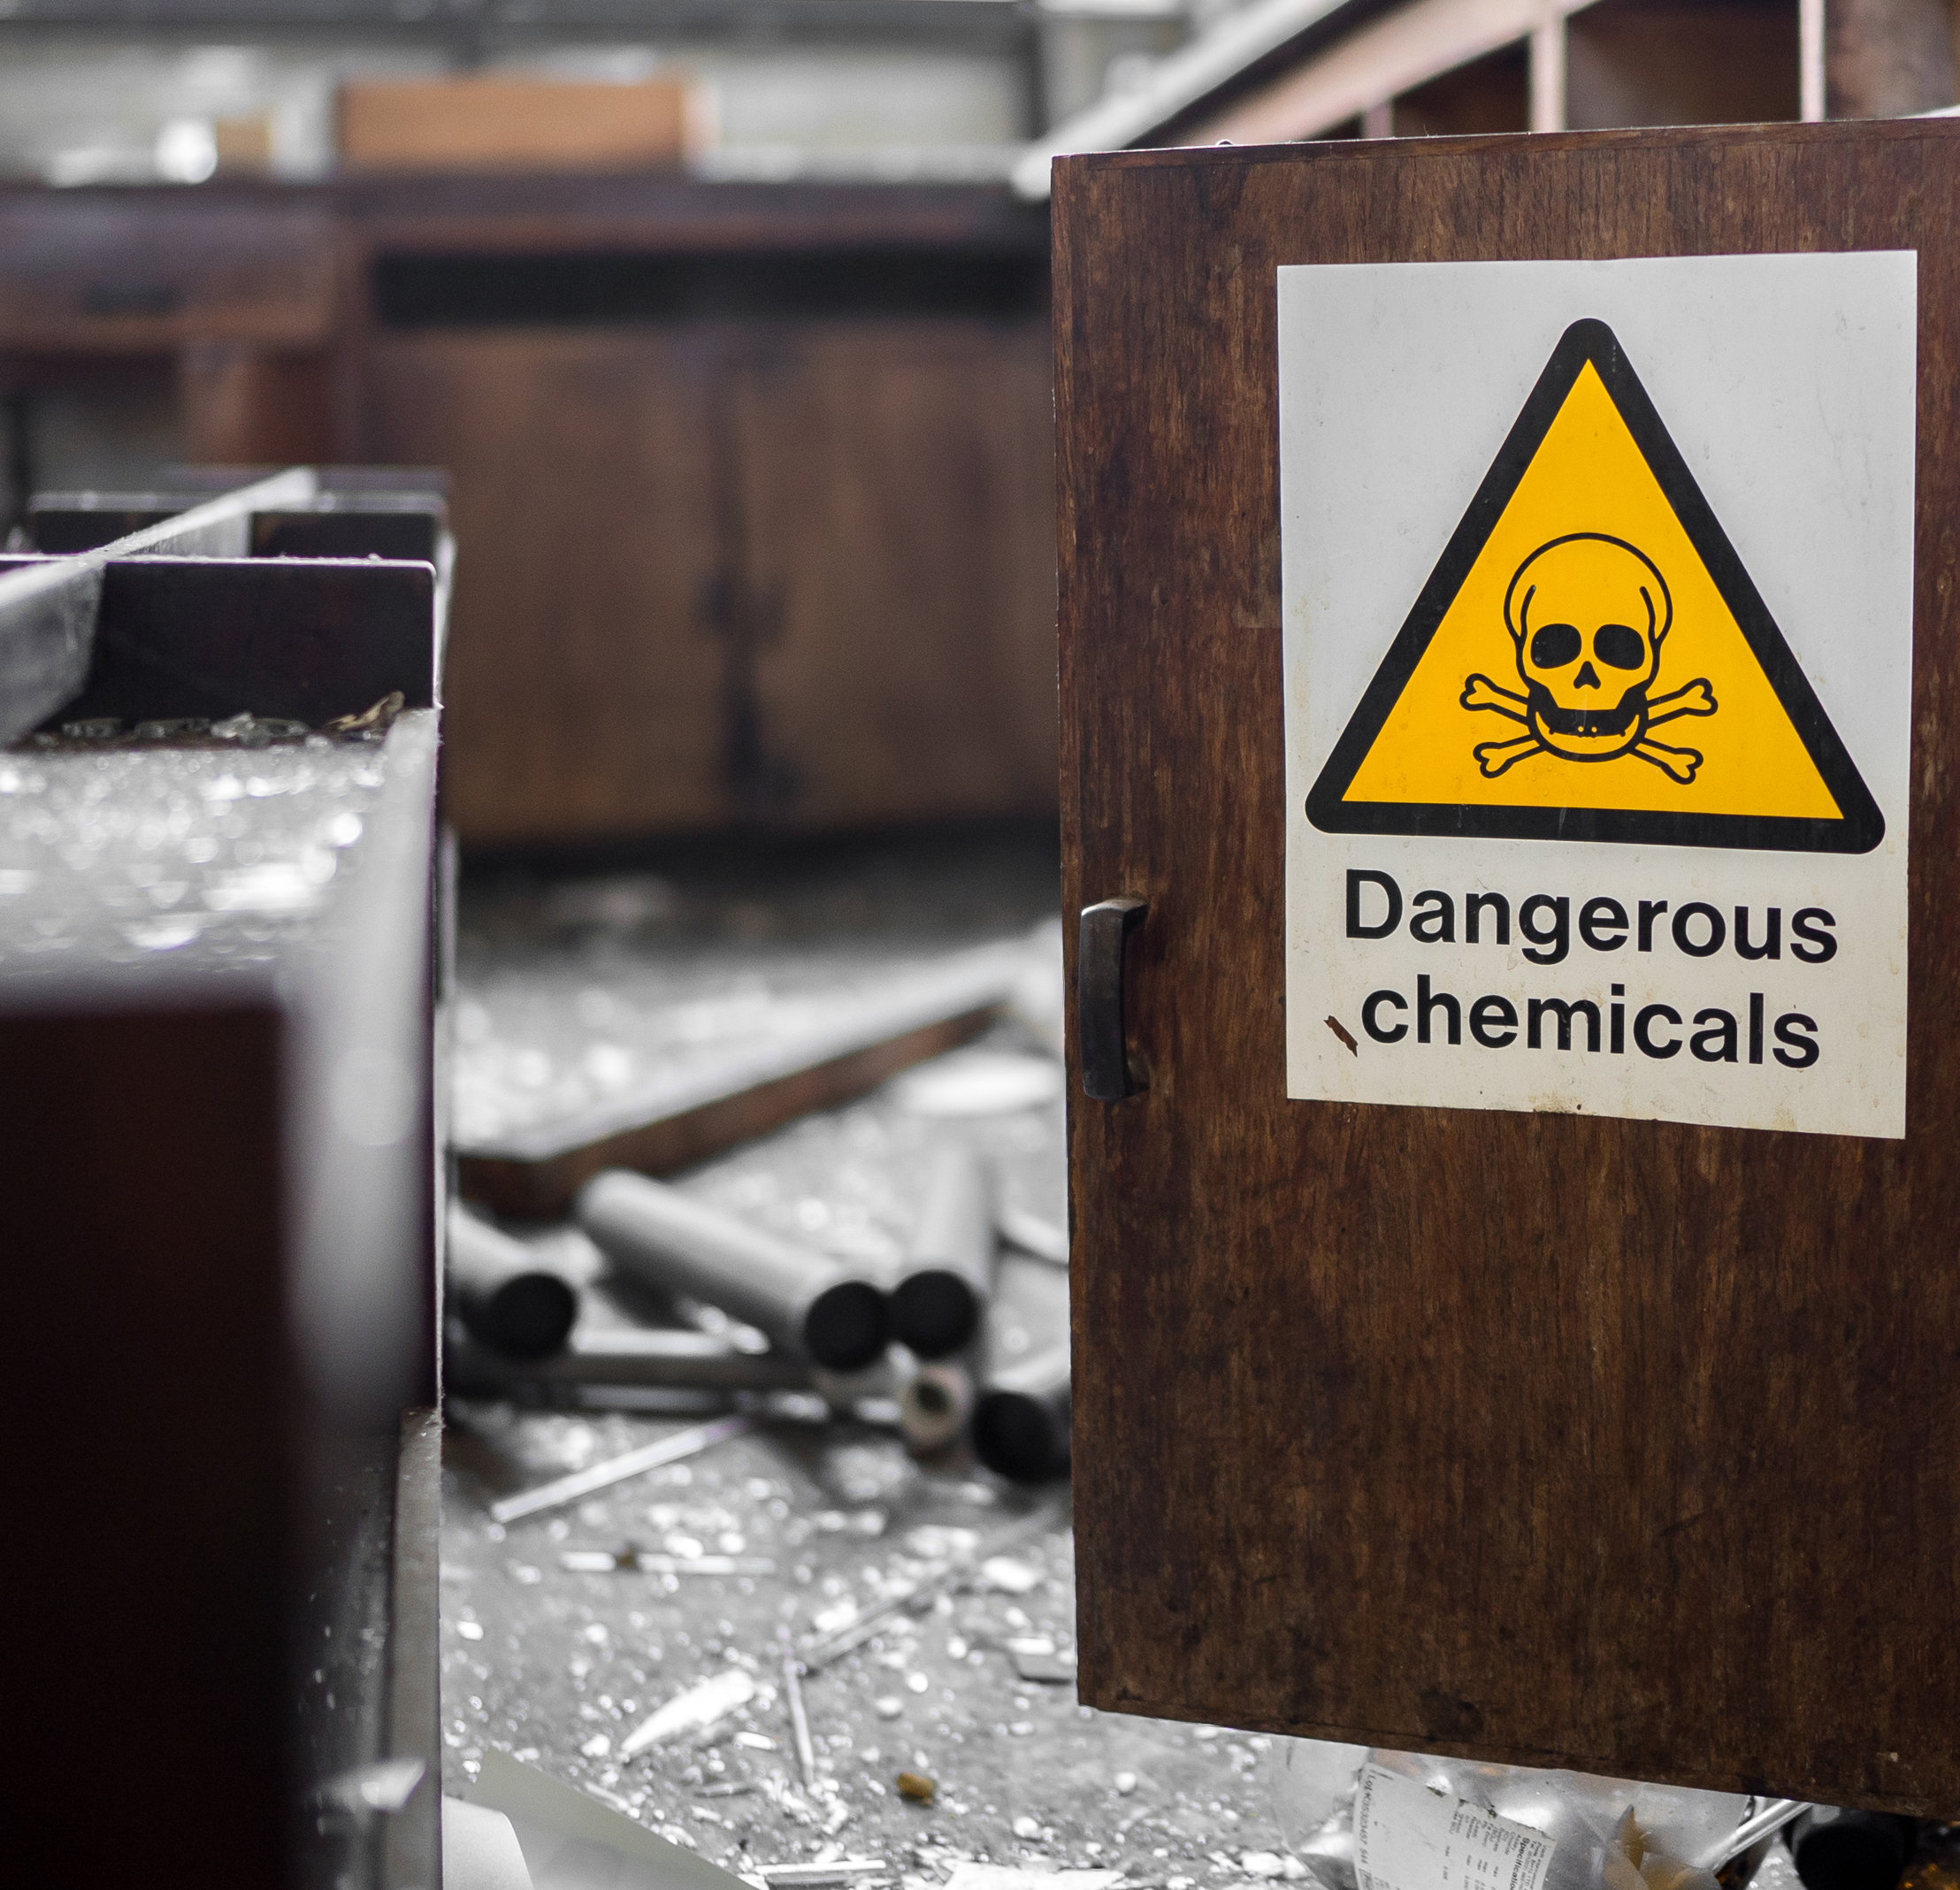 Dangerous Chemicals Sign on a cupboard with smashed glass around from break in